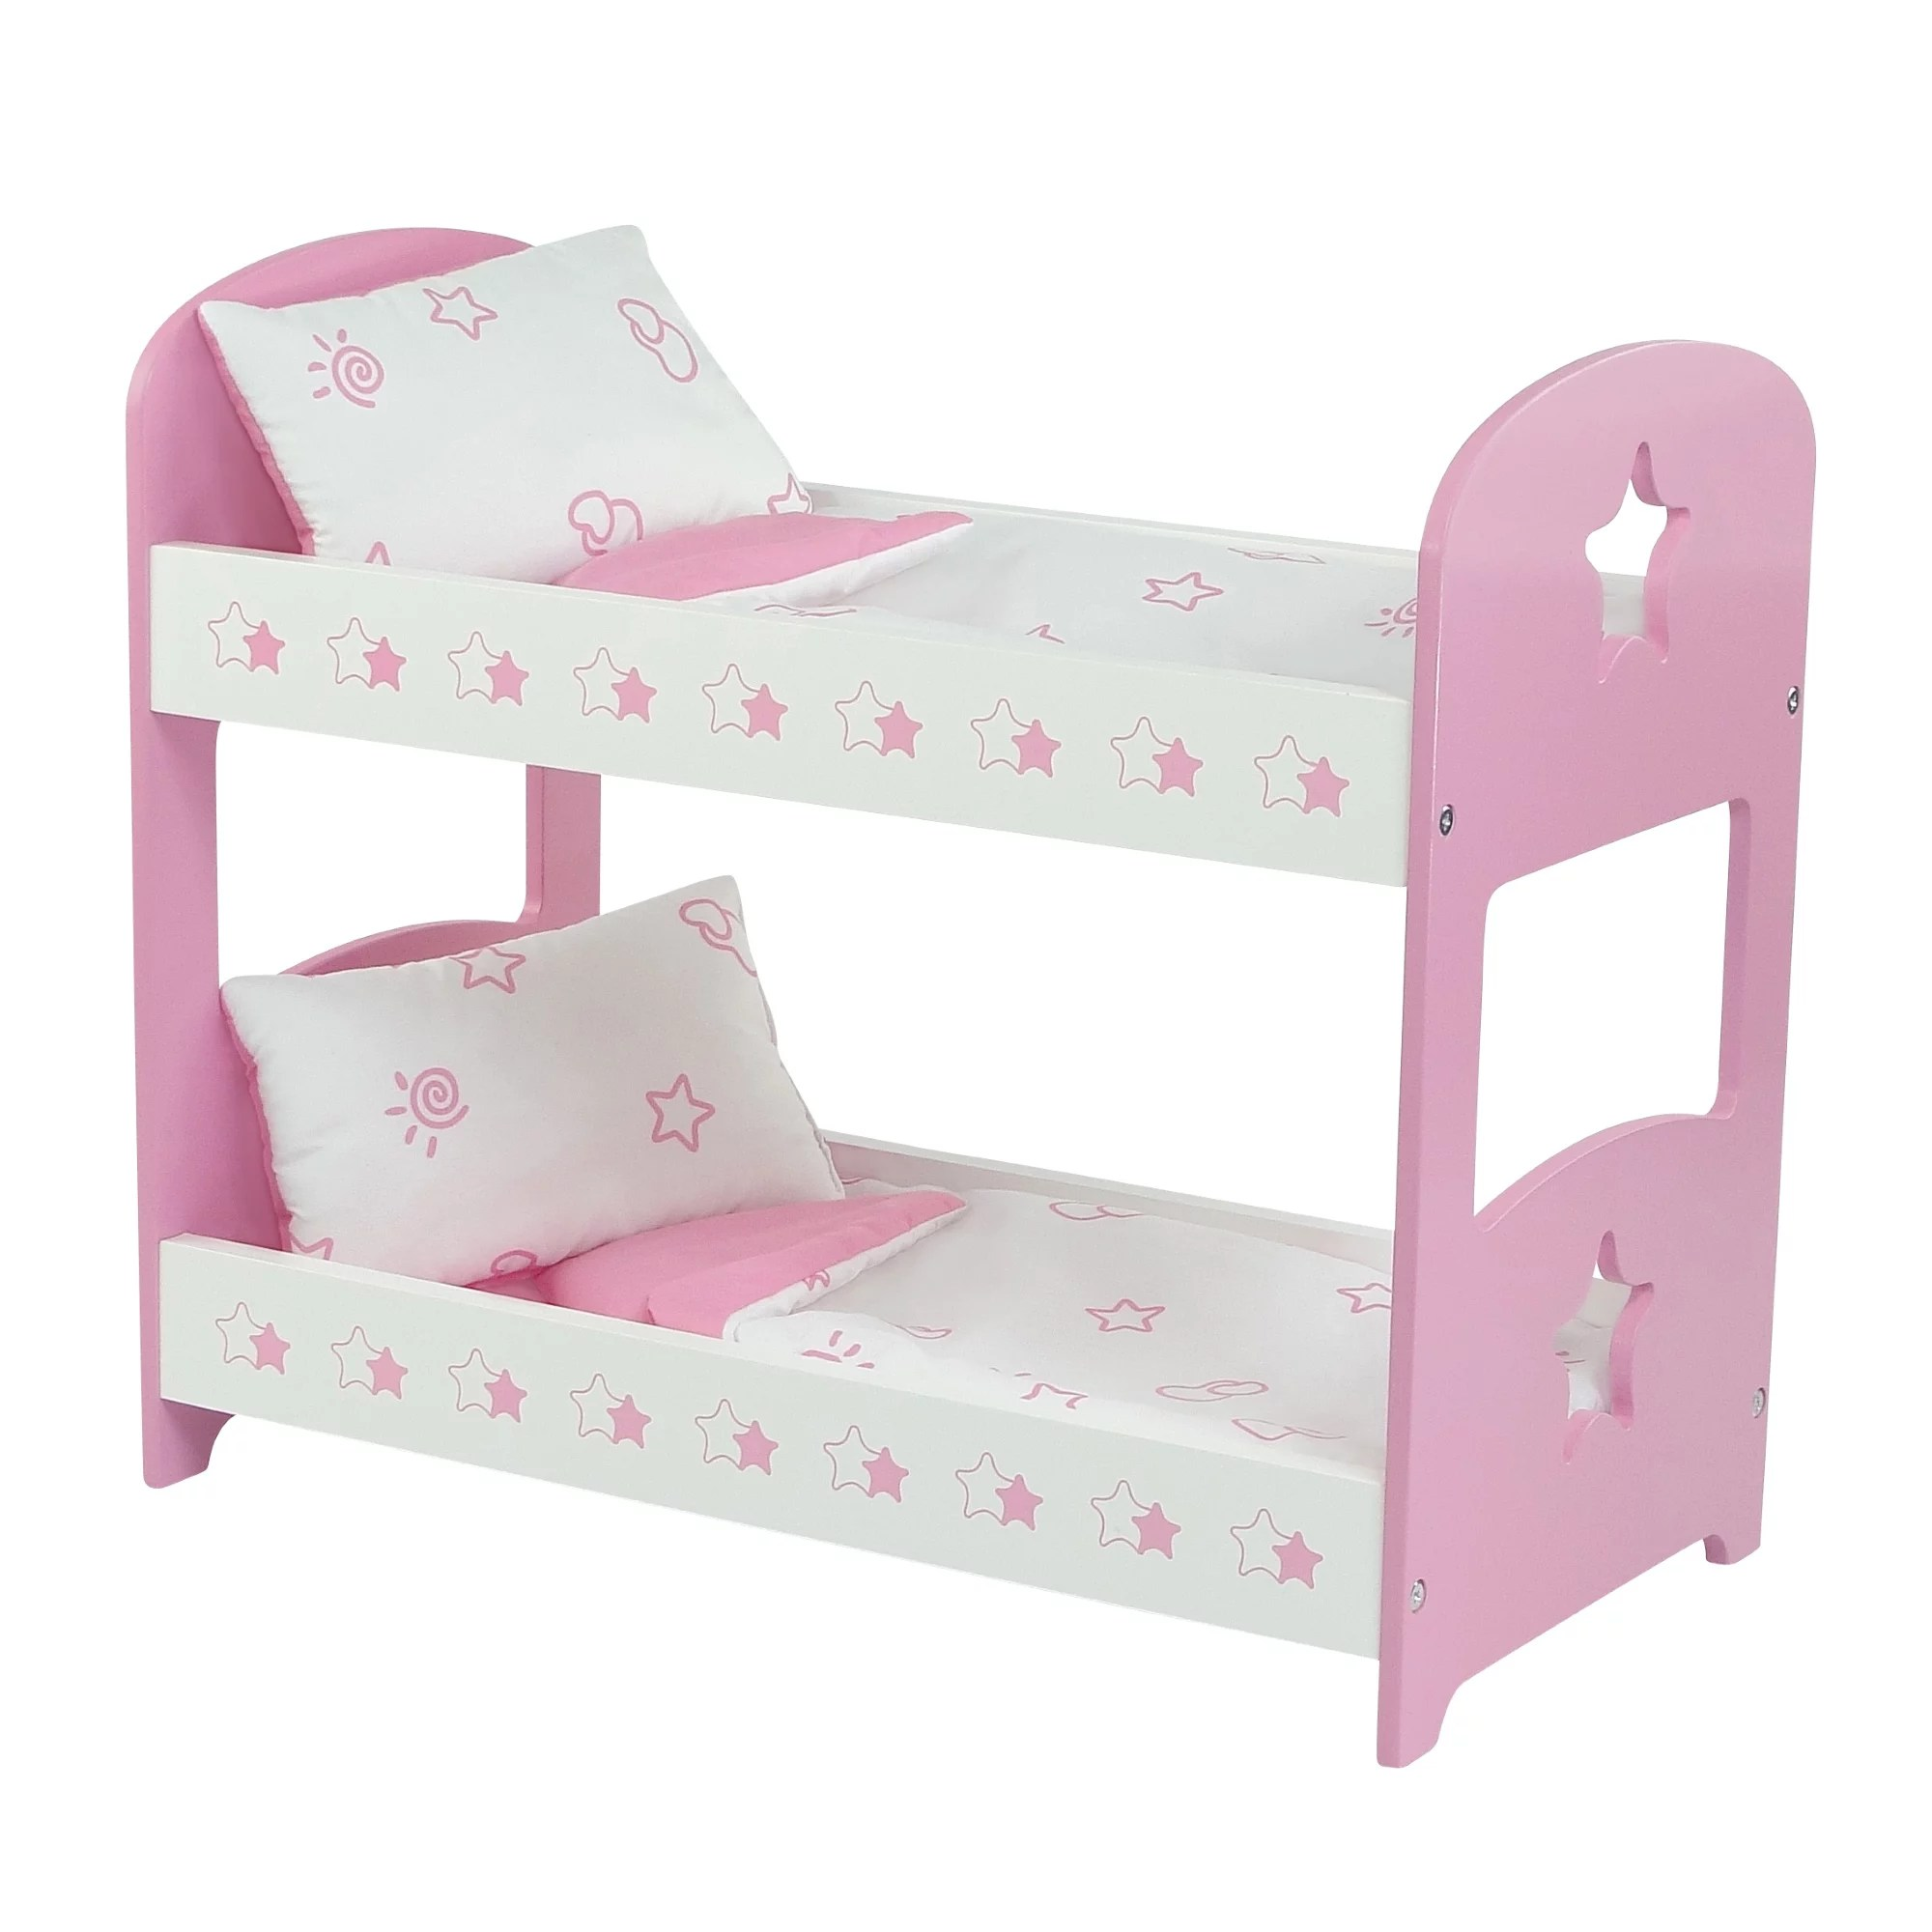 My Life As Doll Bed Fits 18 Inch Doll Bunk Bed Furniture For My Life As And Similar 18 Dolls Doll Bunk Bed With Star Includes Bedding Fits 18 American